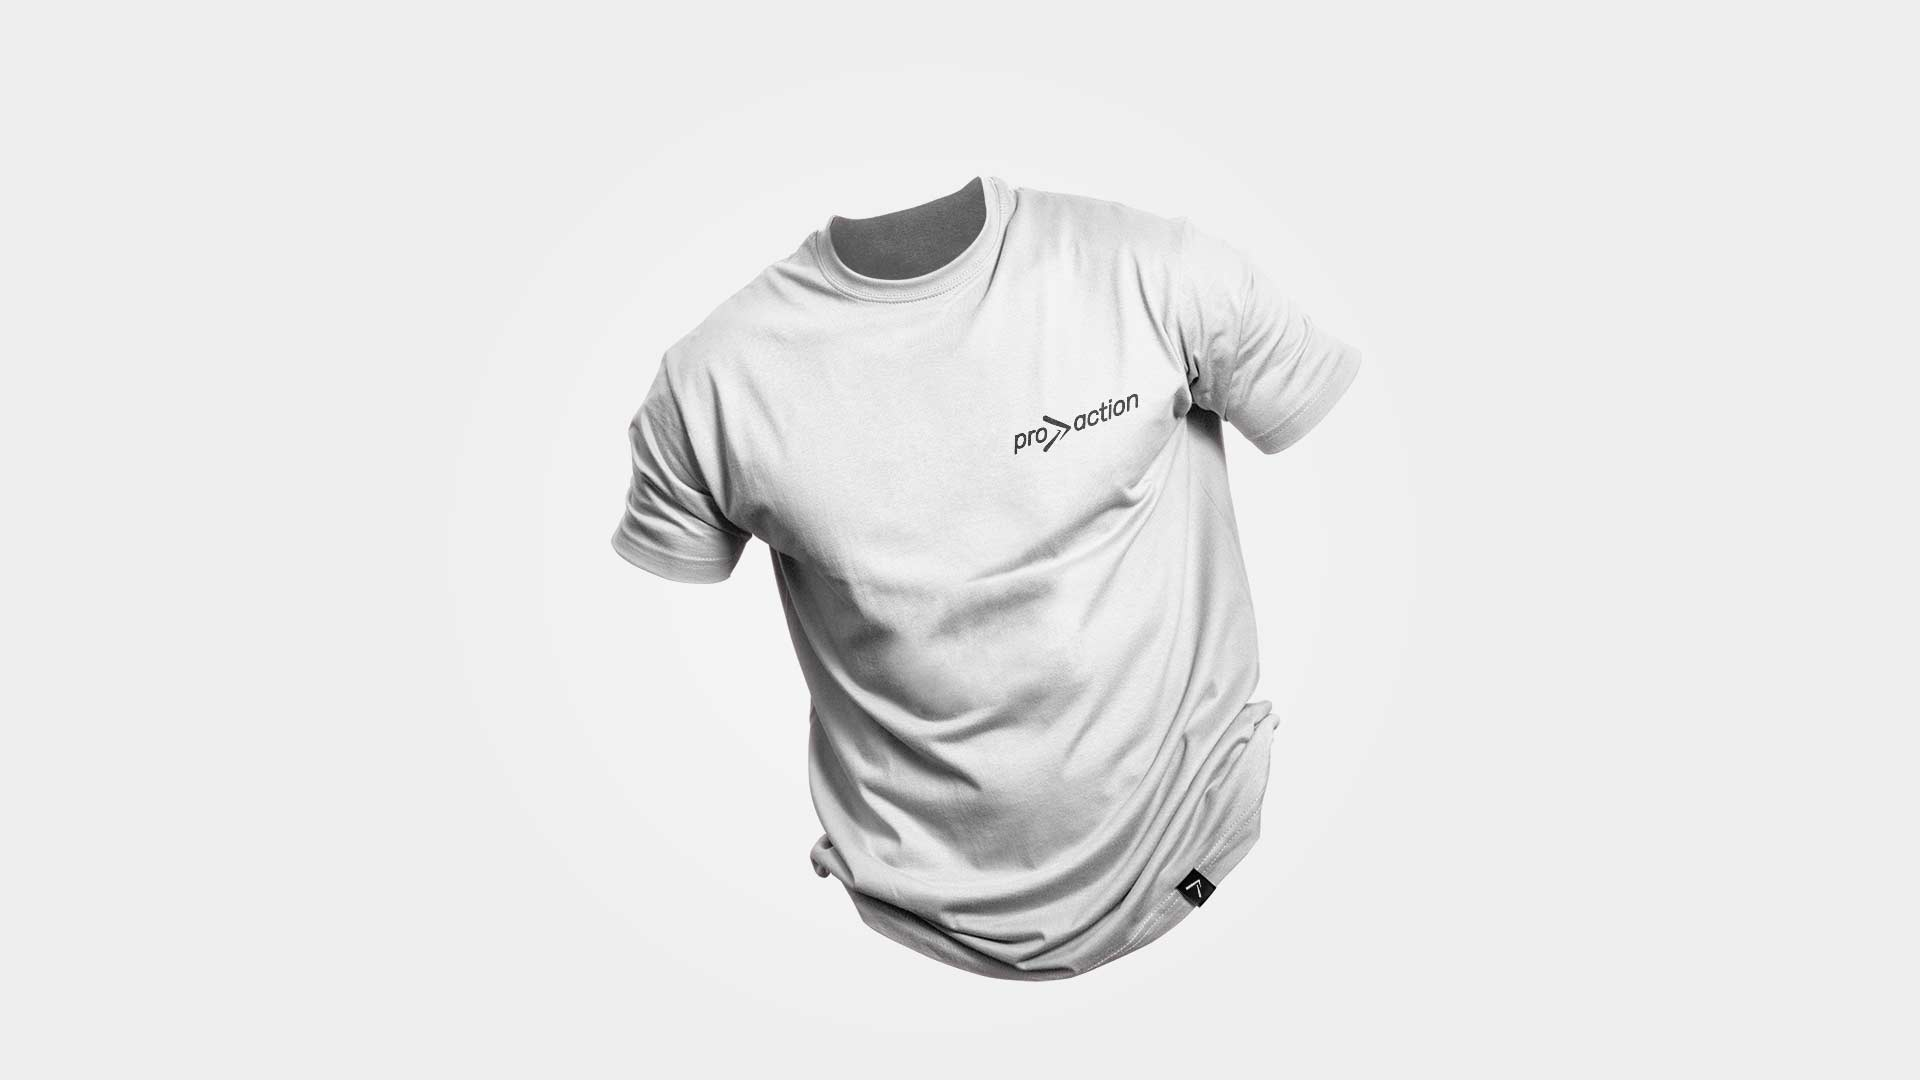 Pro Action white men's t-shirt mock-up with small logo on the left